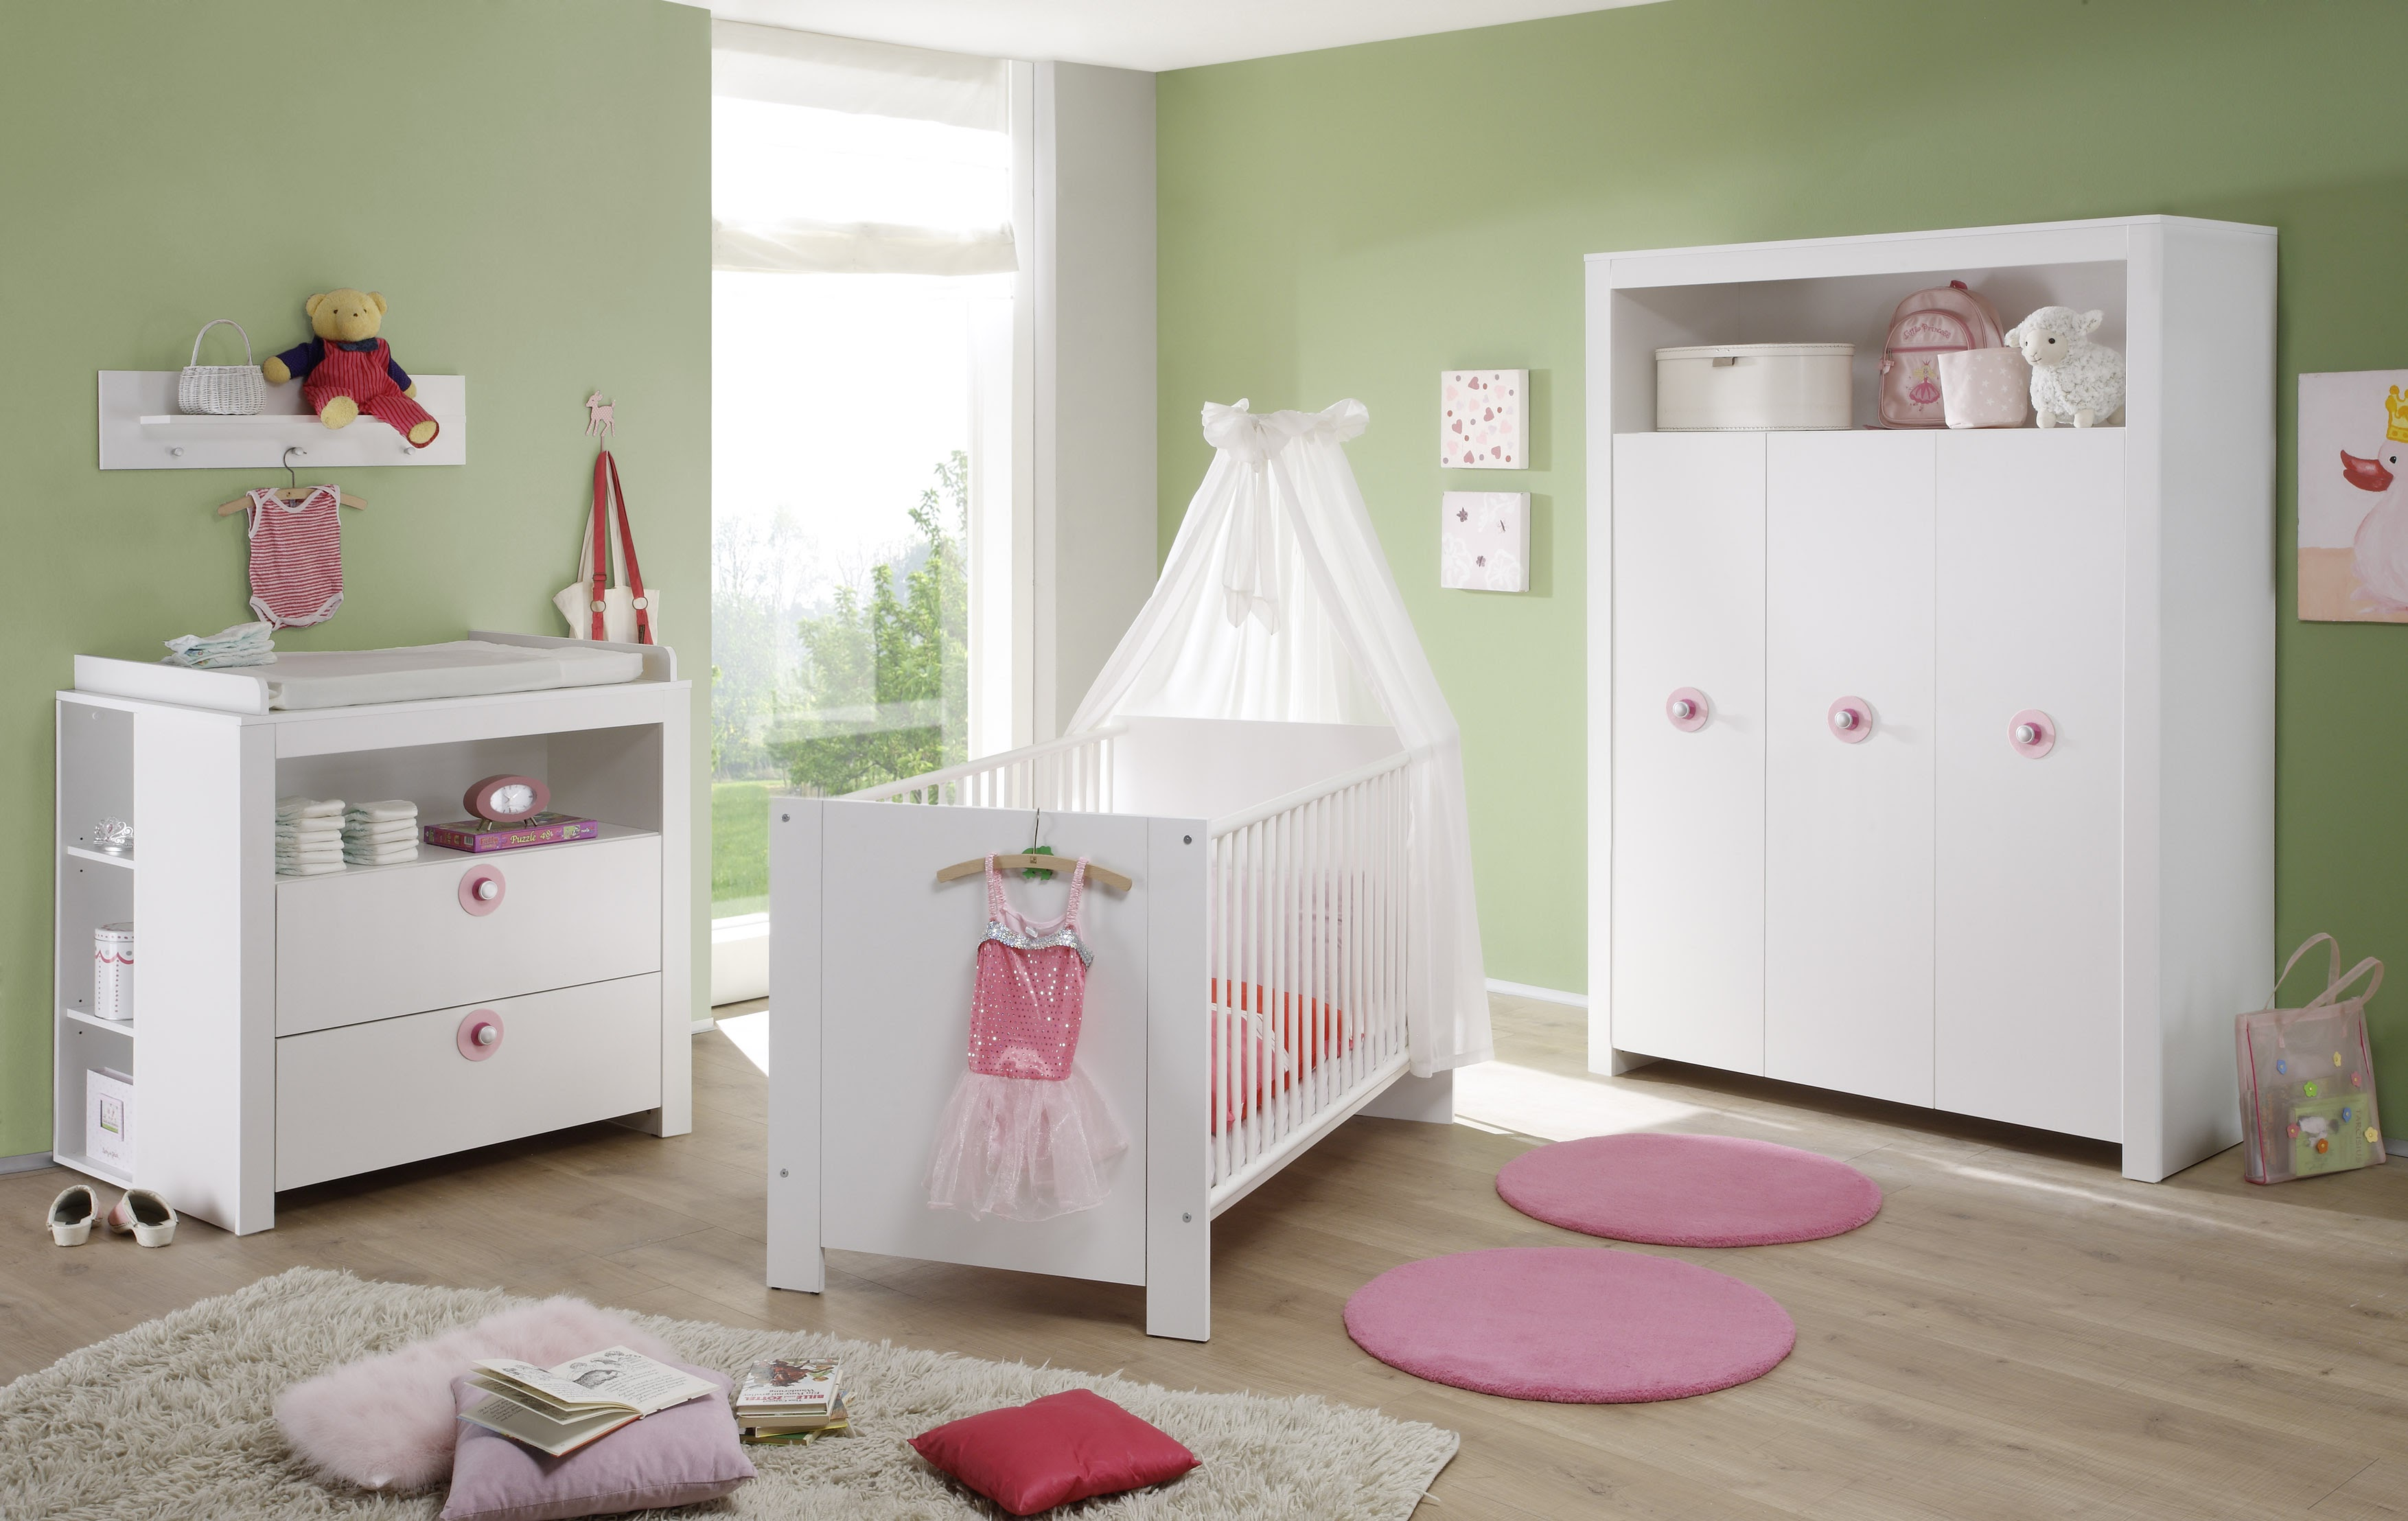 olivia baby room furniture free delivery yunax ie rh yunax ie baby room set sylvanian families baby room set sylvanian